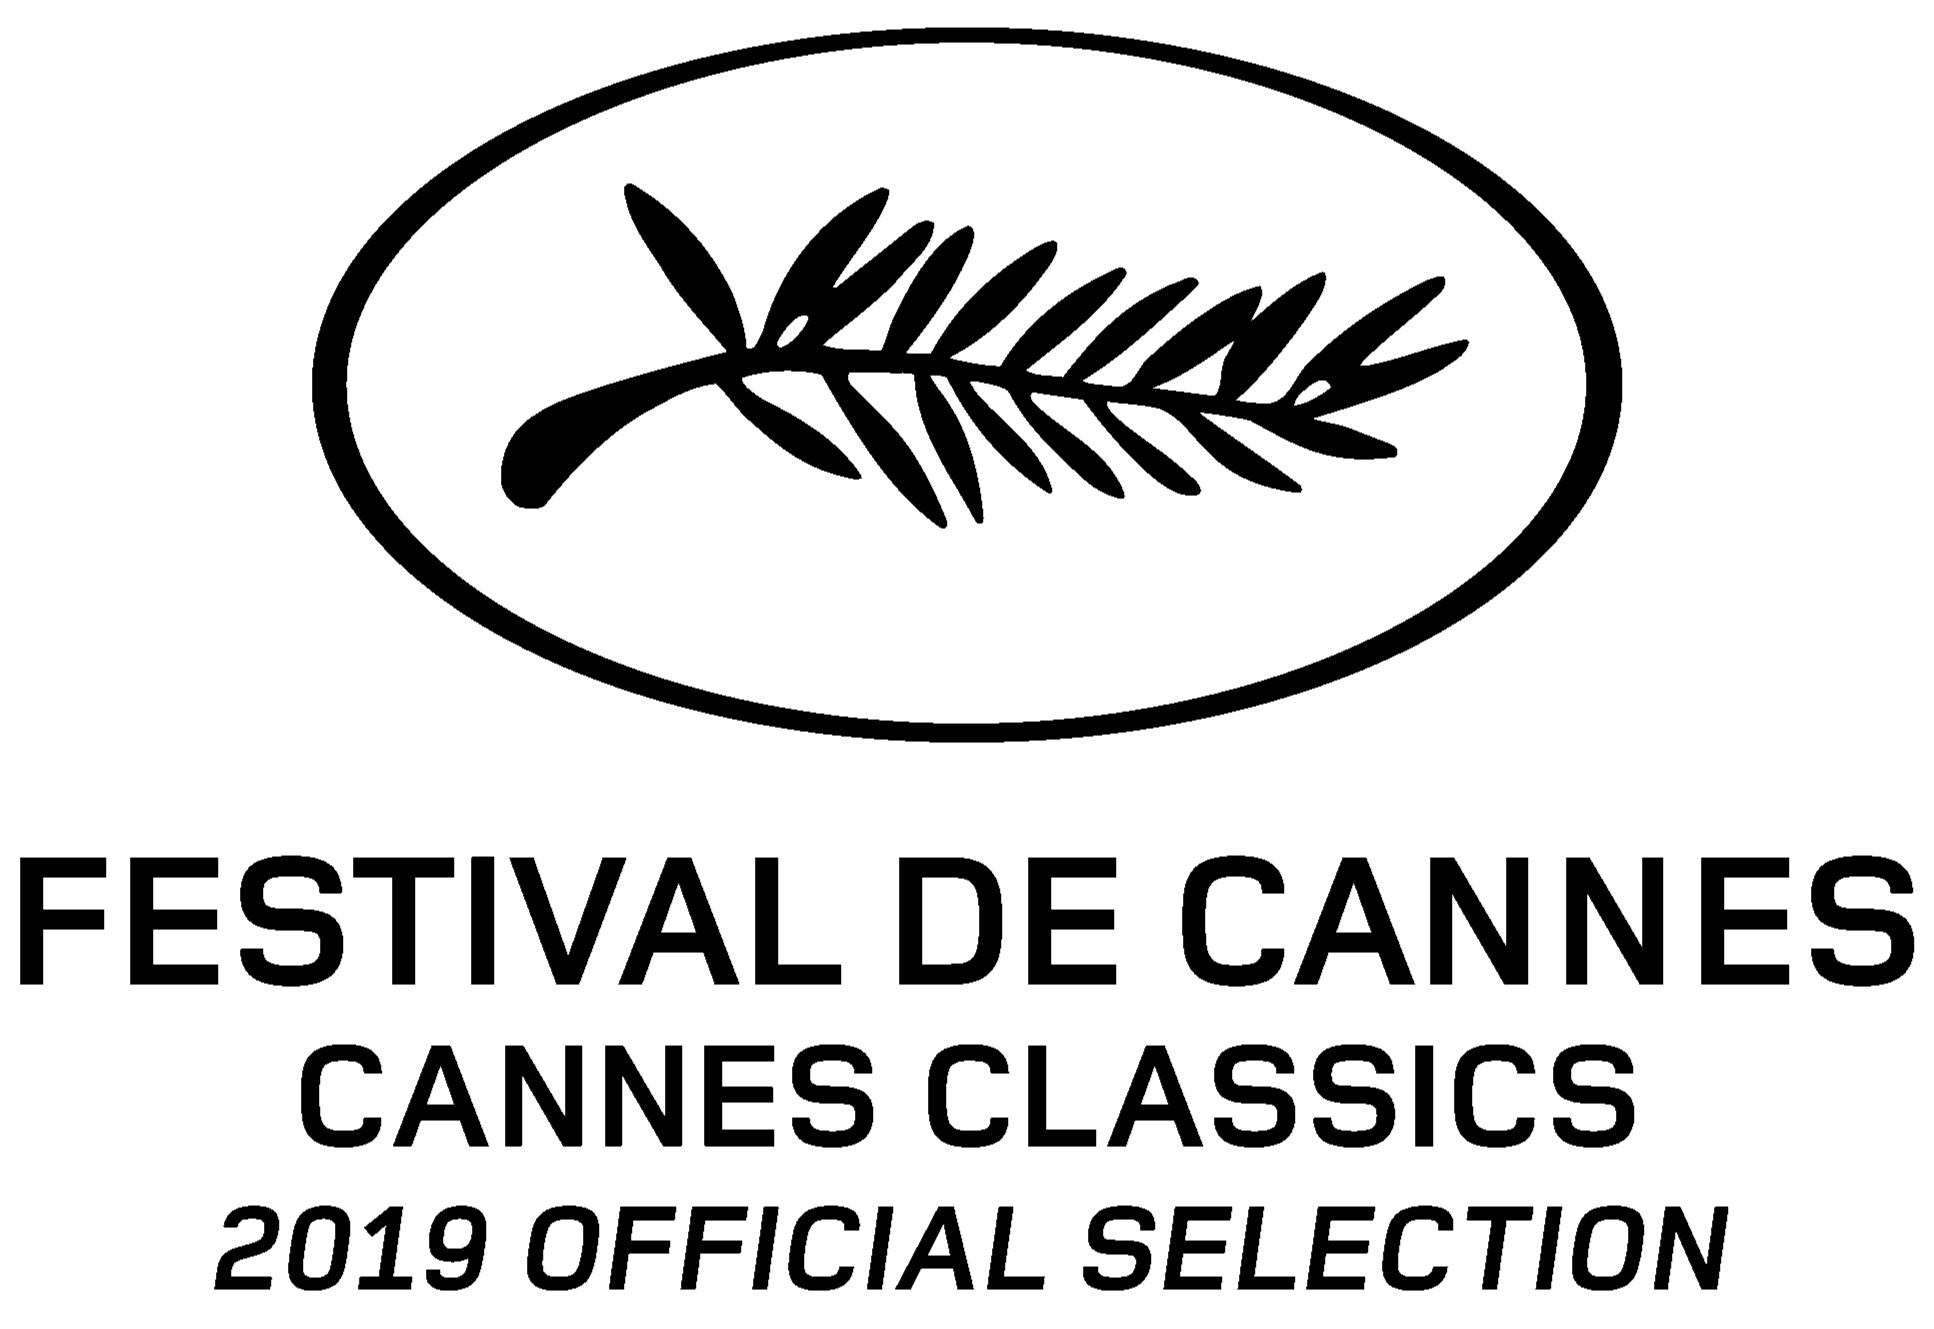 LOGOS CANNES_WHITE_ENG_CANNES CLASSICS_2019.png